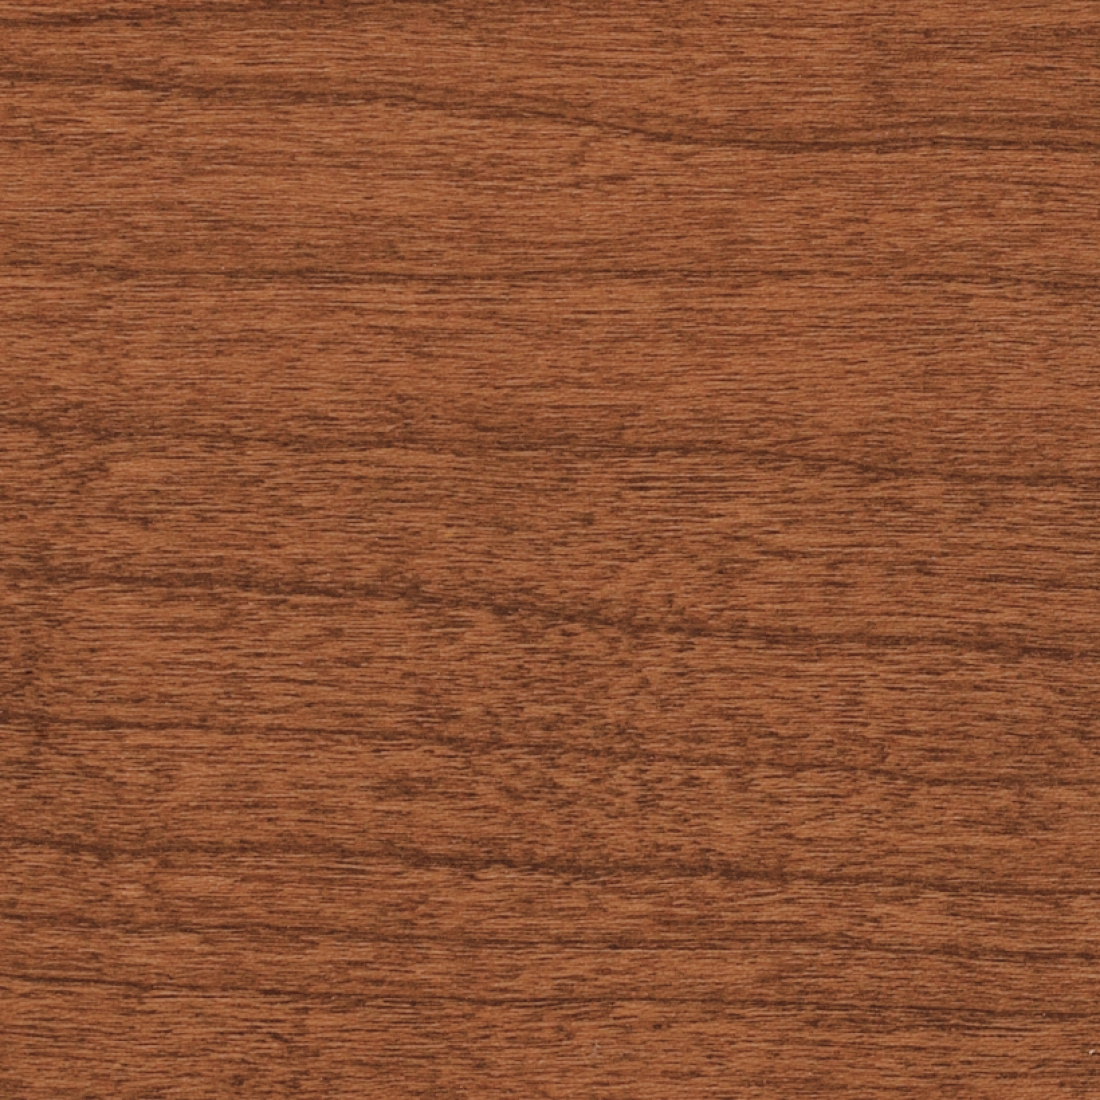 Wood Veneer WCW Warm Cherry